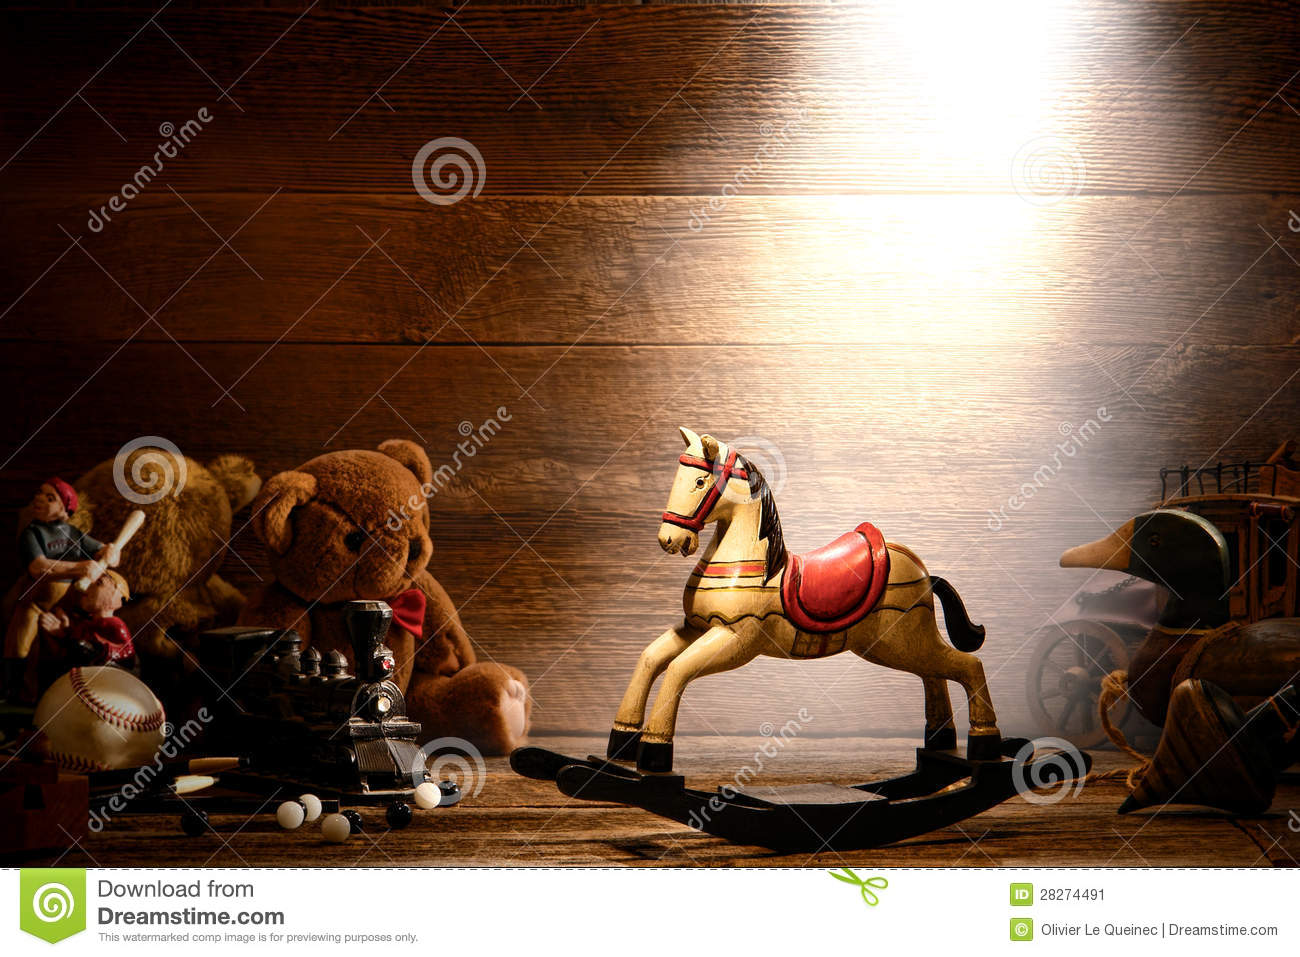 Vintage Wood Rocking Horse and Old Toys in Attic